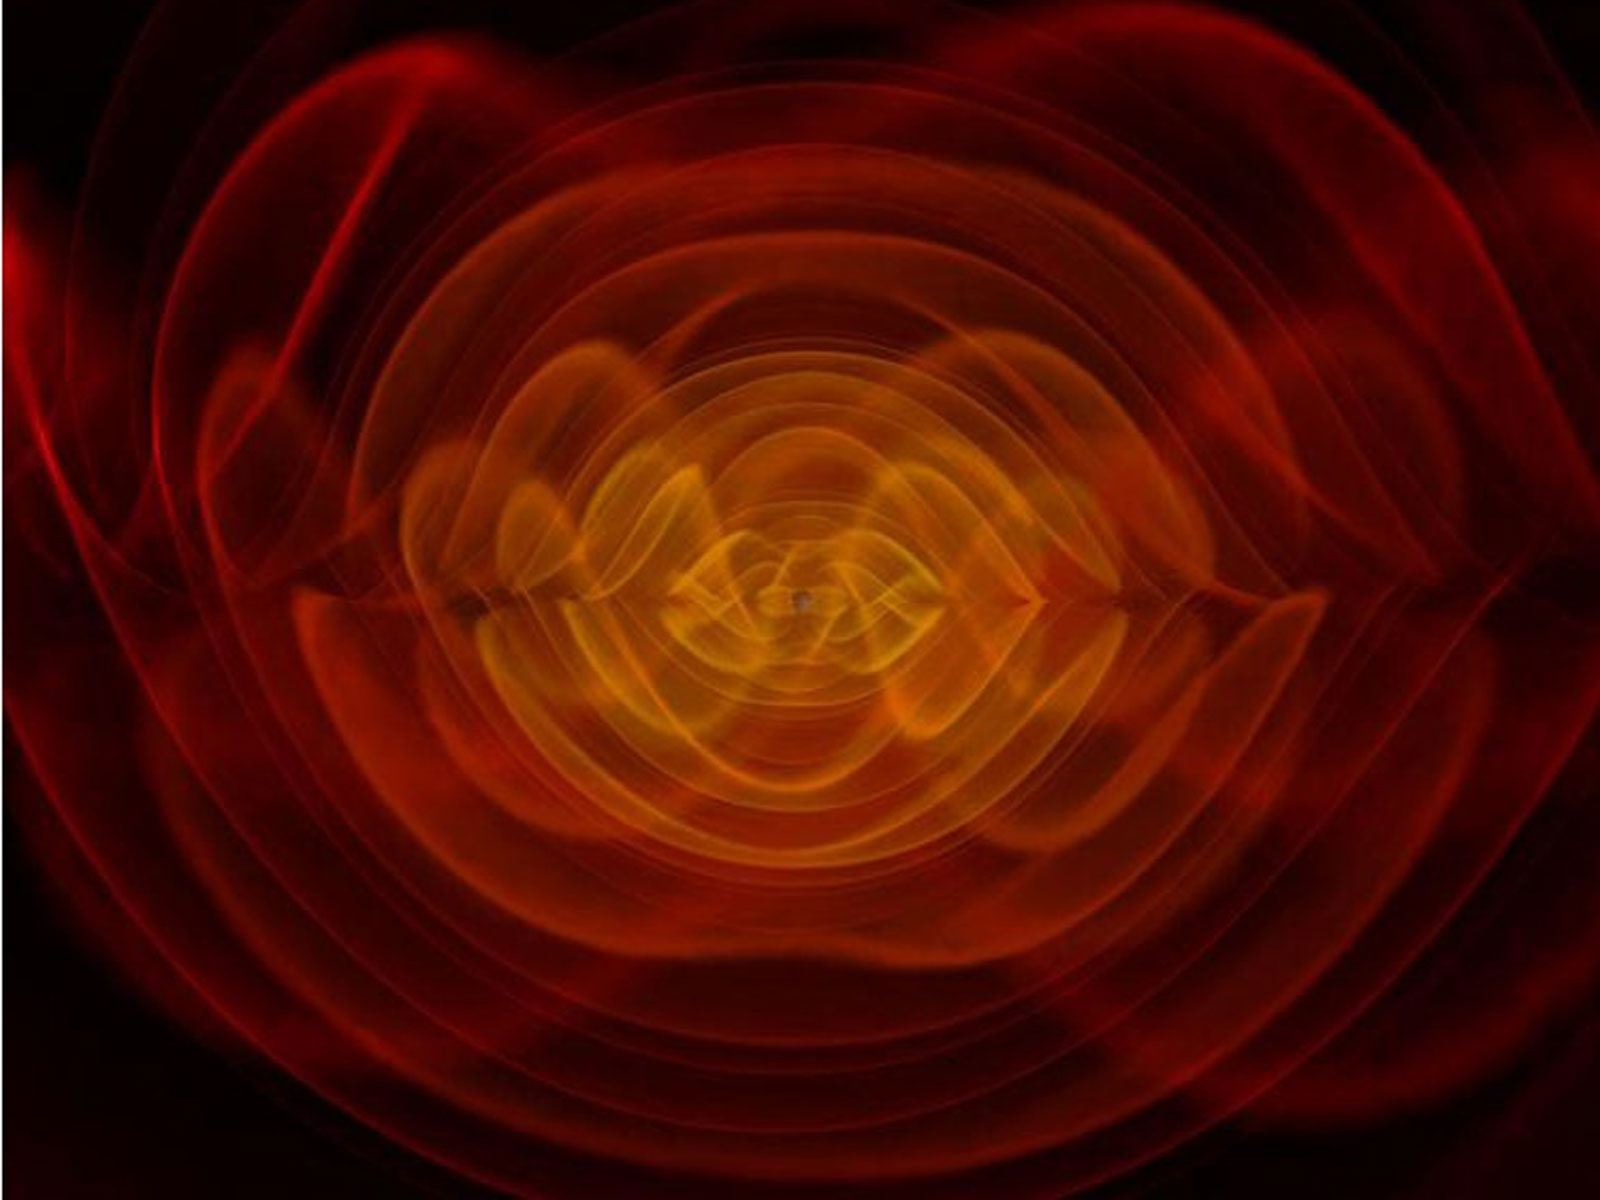 This is a visualization of gravitational waves, ripples in space-time predicted by Albert Einstein. This image appears on the cover of the National Academies Astro2010 Decadal Survey midterm report